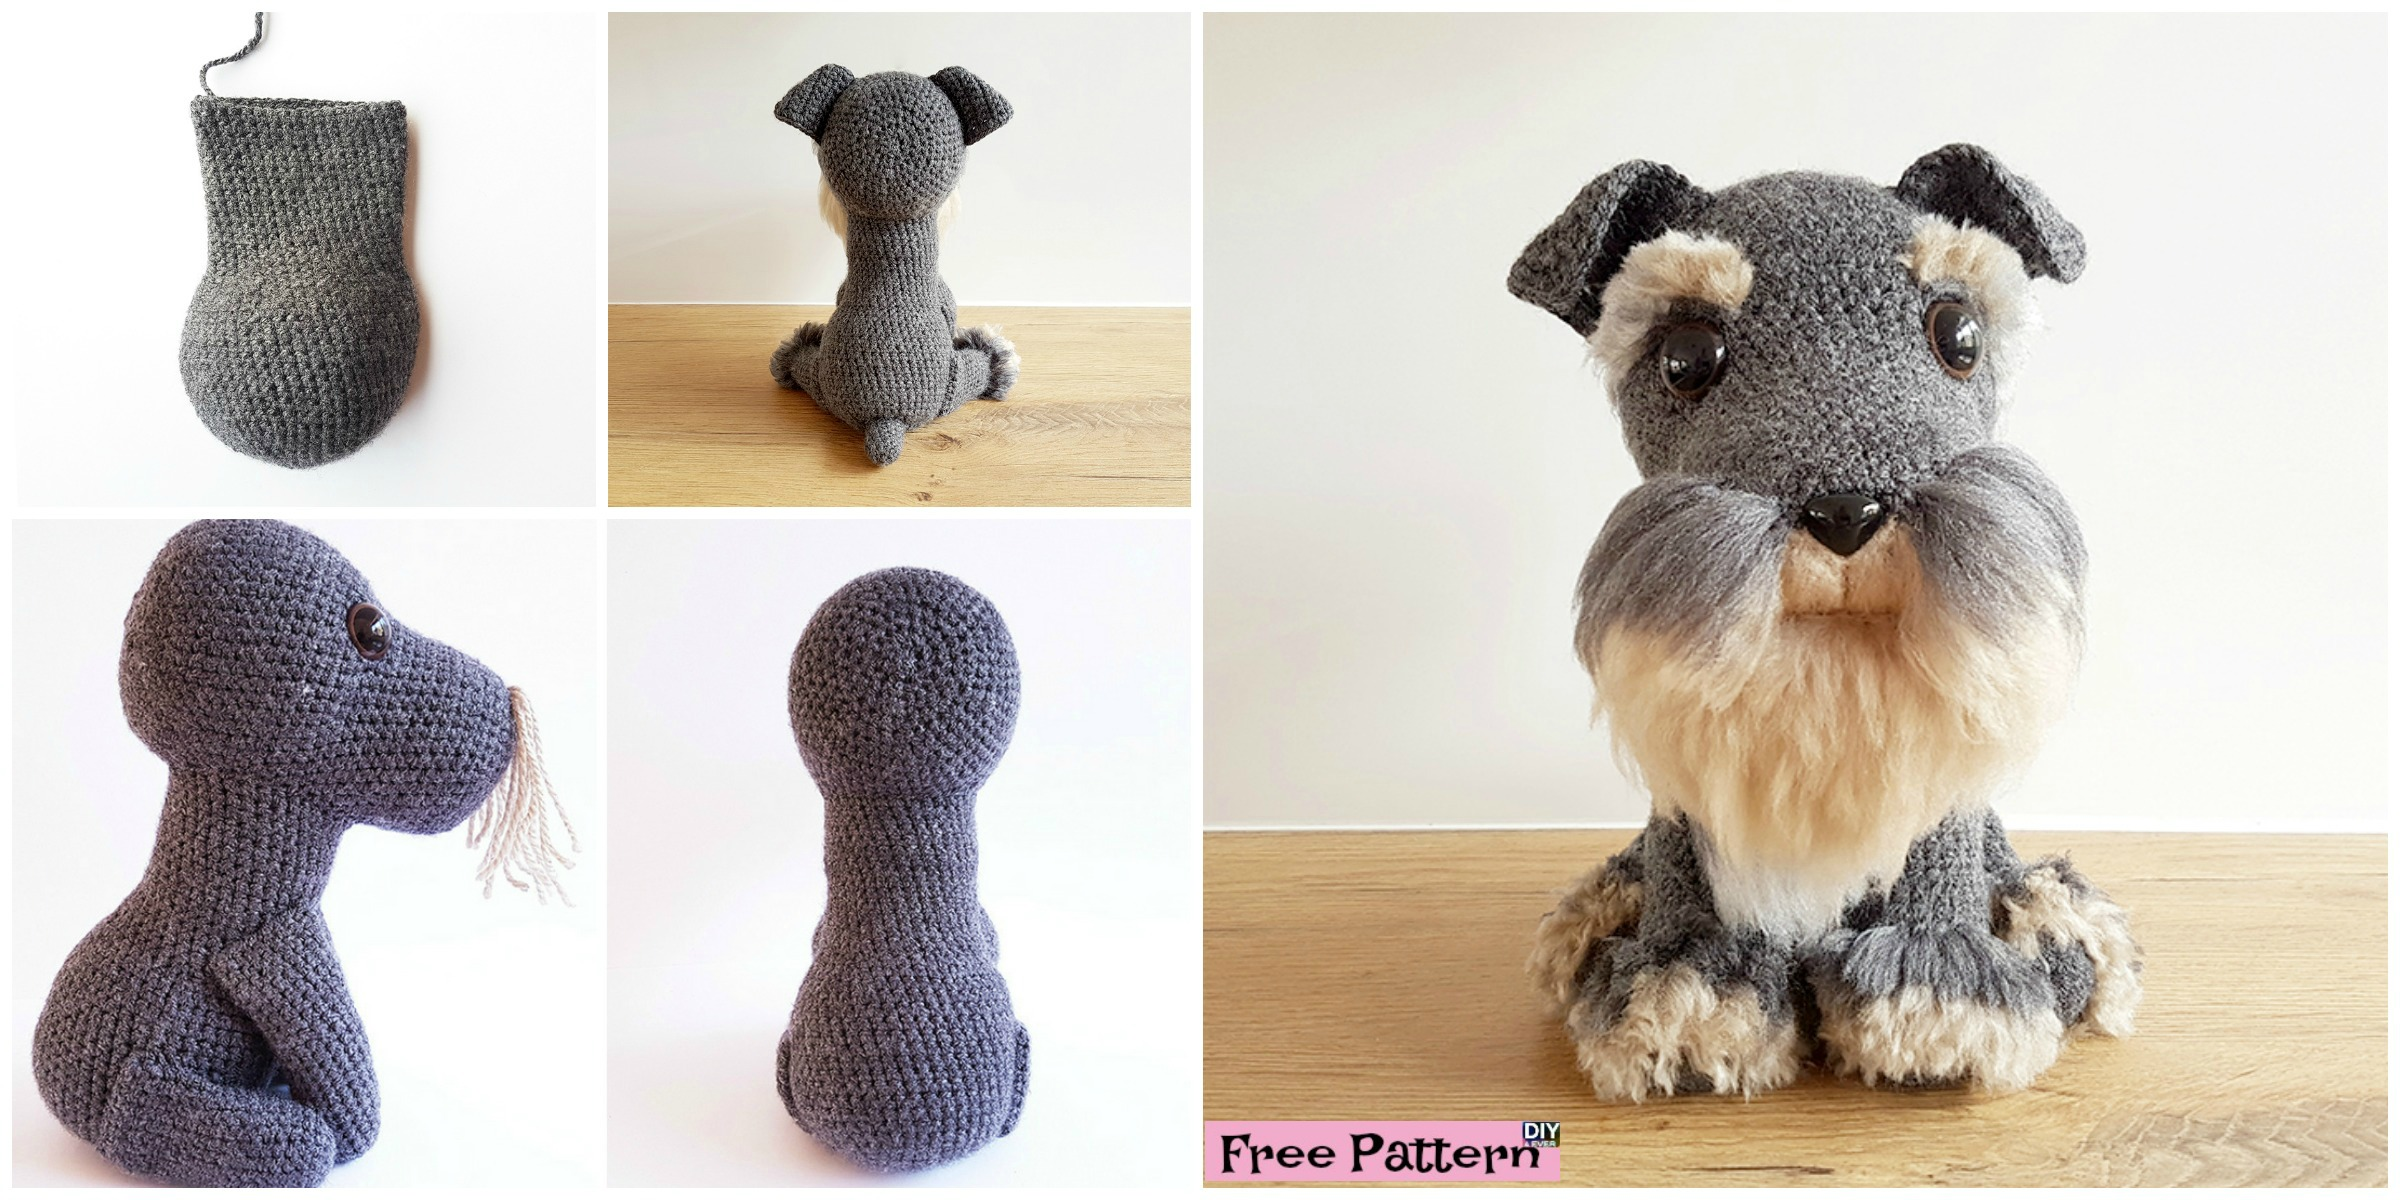 diy4ever- Crochet Amigurumi Schanuzer Dog - Free Pattern